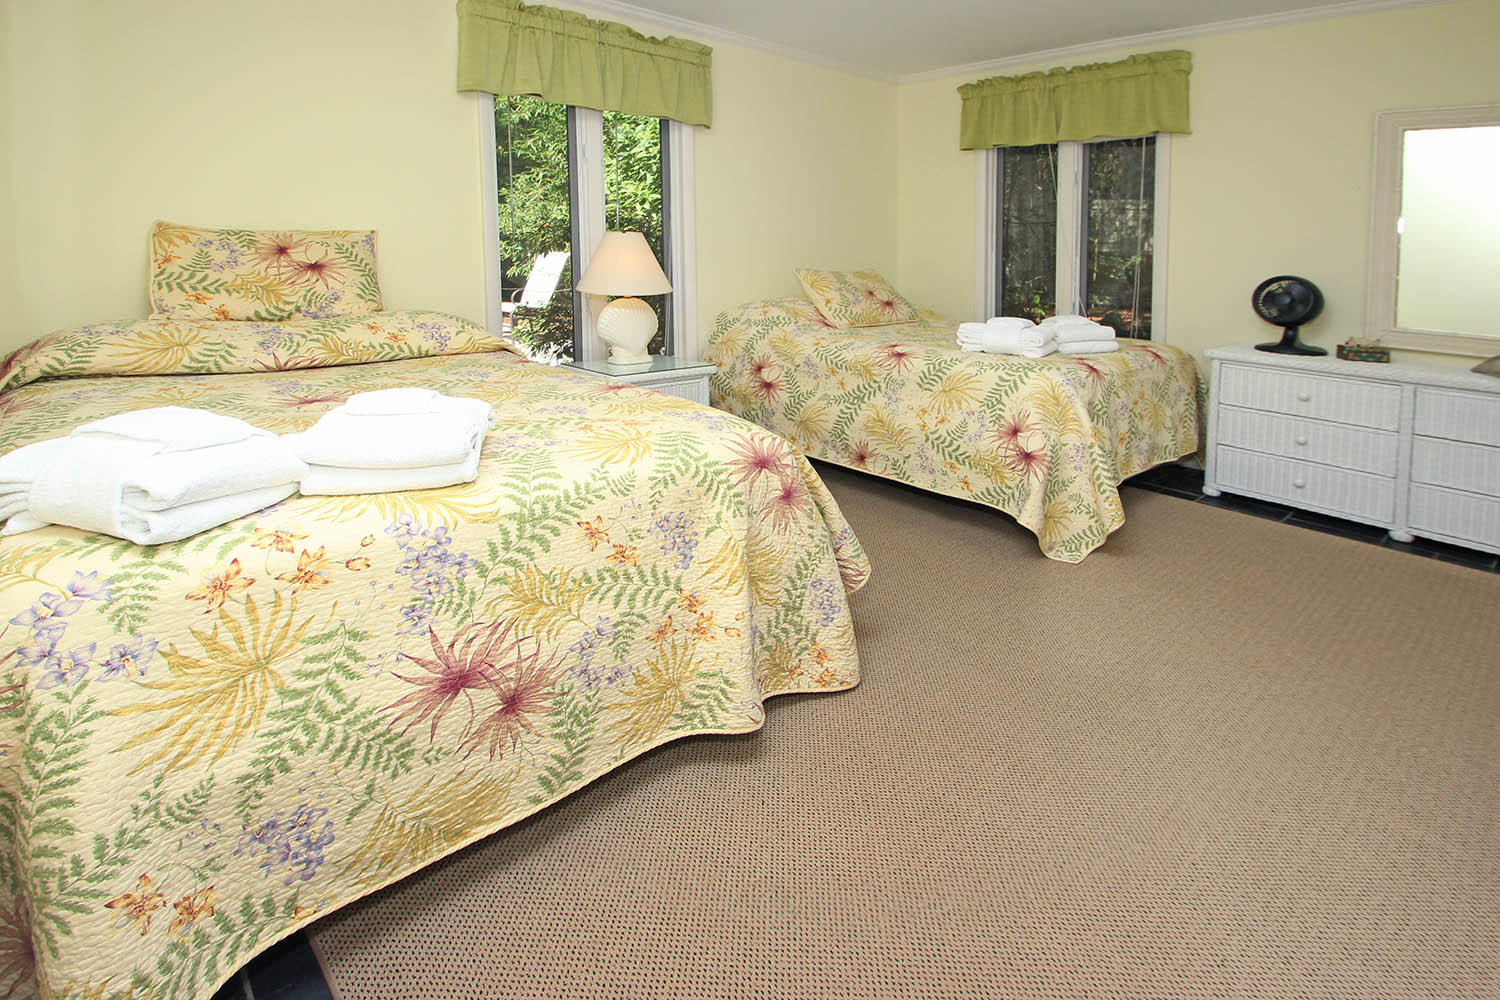 Guest bedroom with two double beds